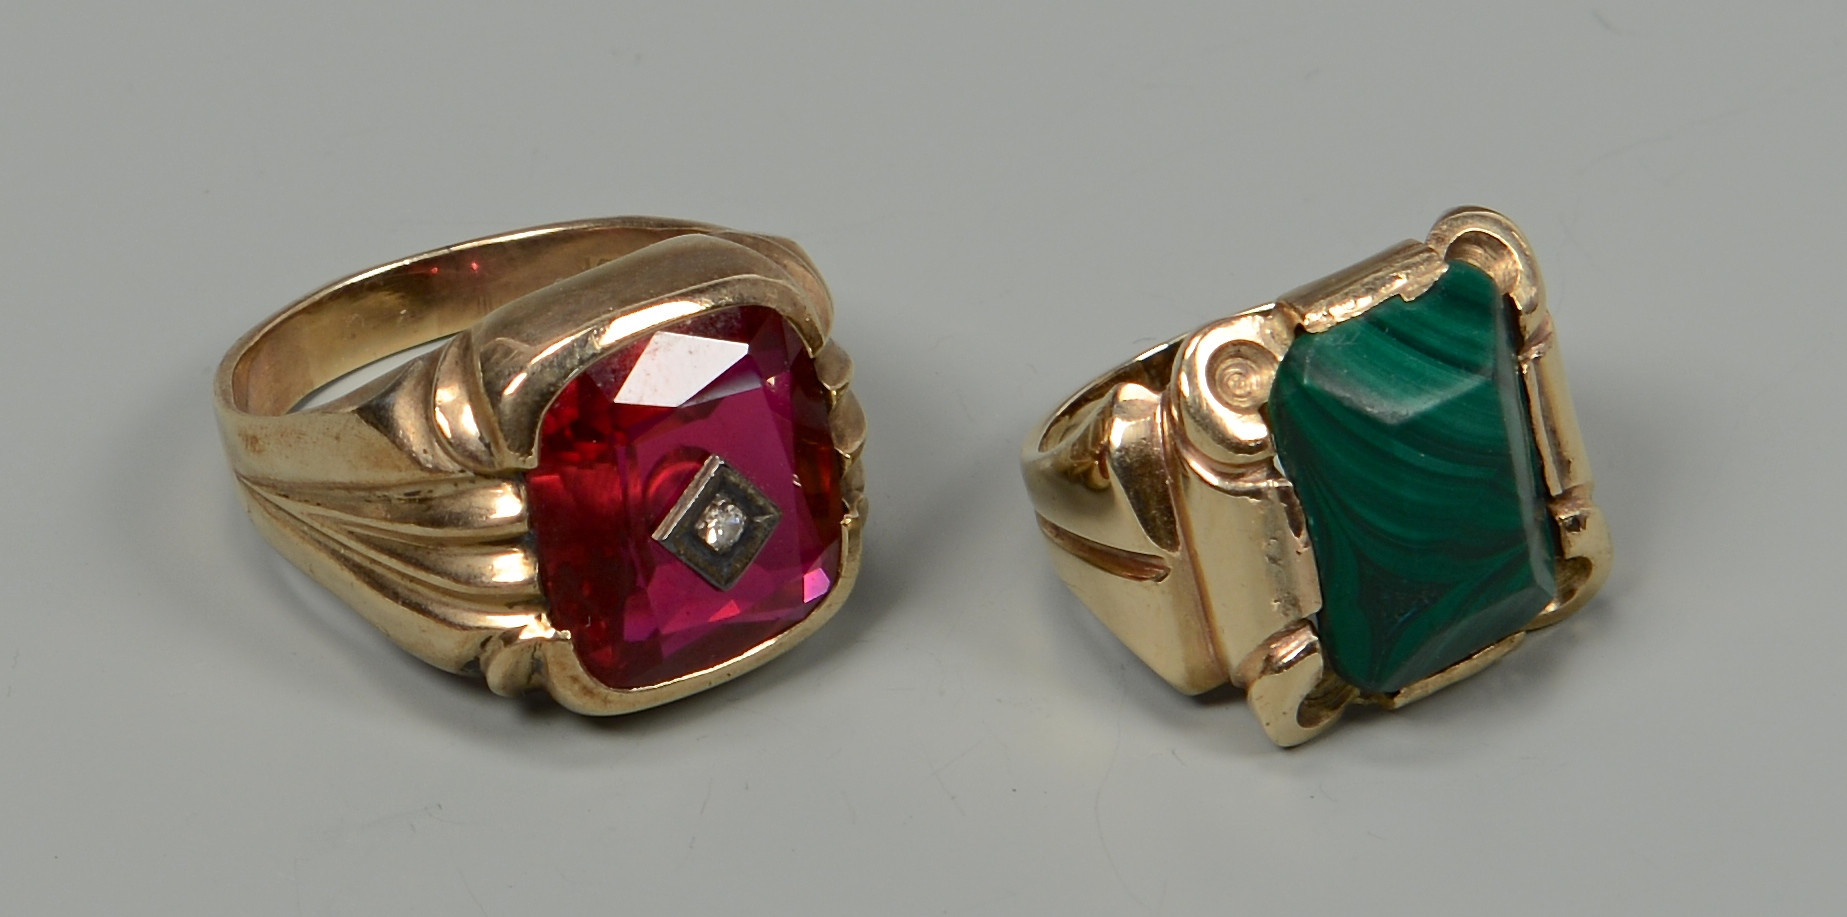 Lot 594: 5 Articles of Vintage Jewelry